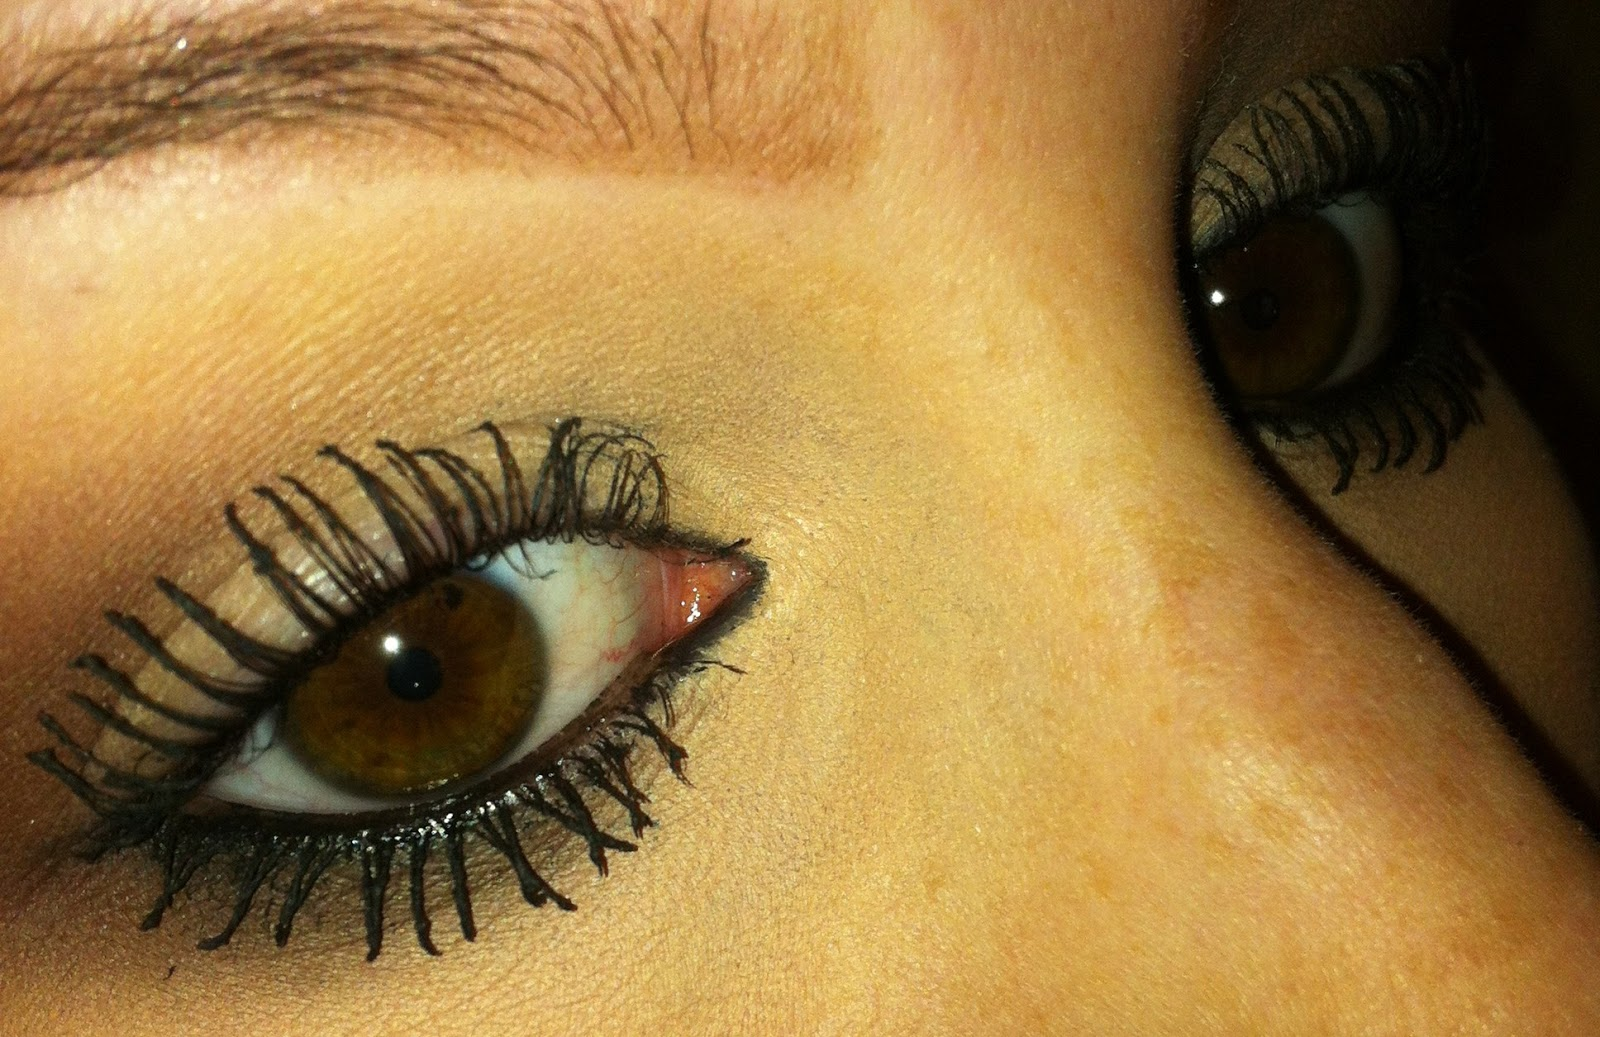 Holly Mixtures: My Amazing Eyelashes Experience: LVL Lashes Review